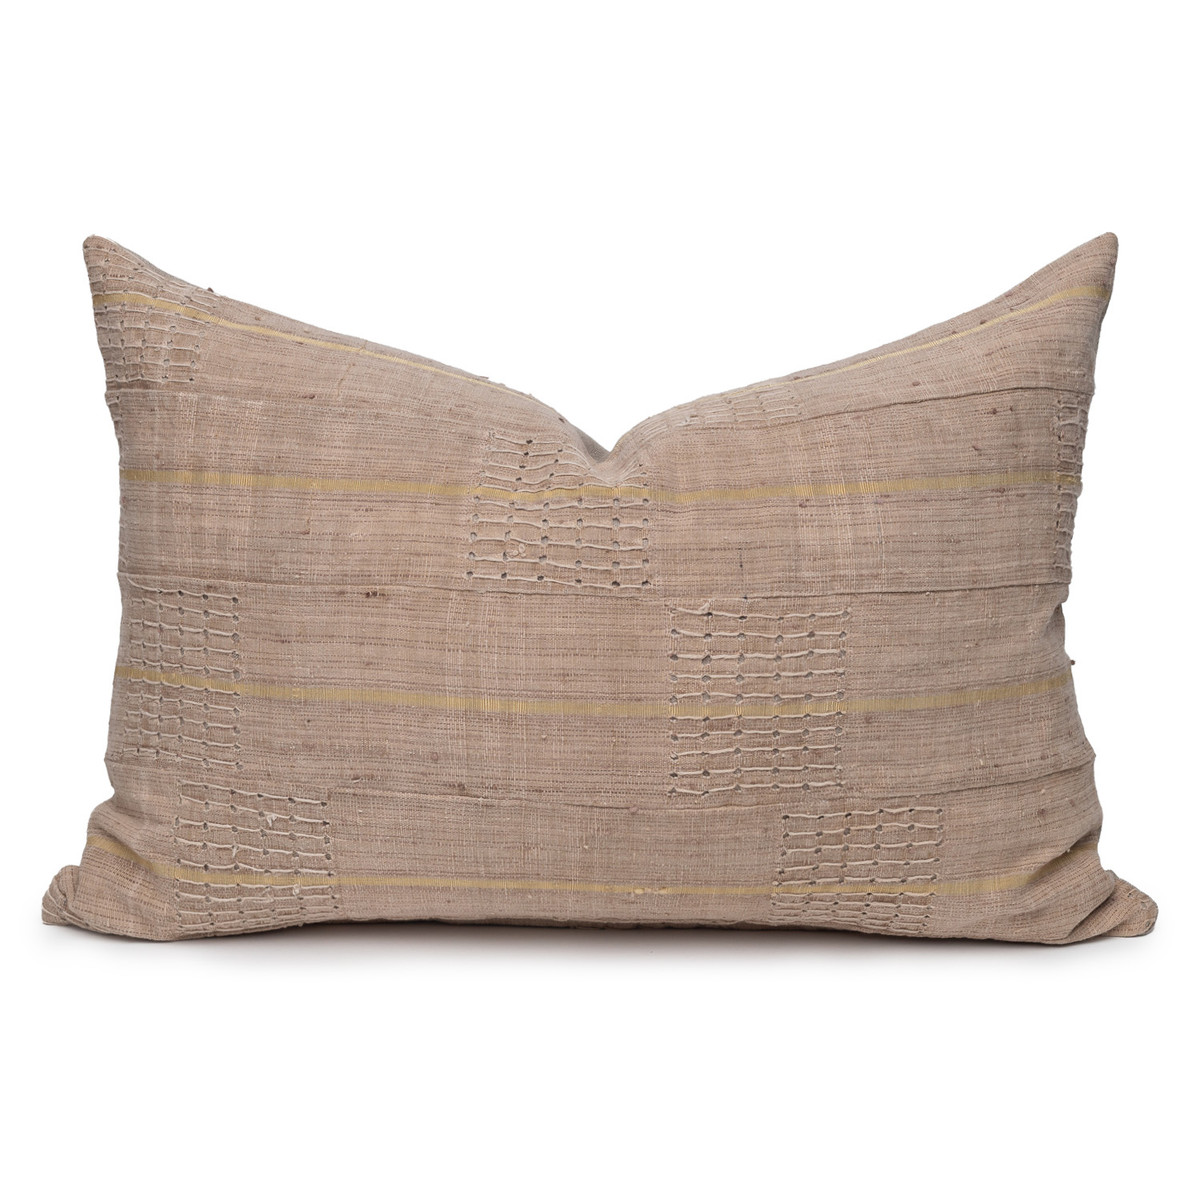 Remi Lumbar Luxe Vintage Pillow with African Aso Oke Textiles- 1622- Front View